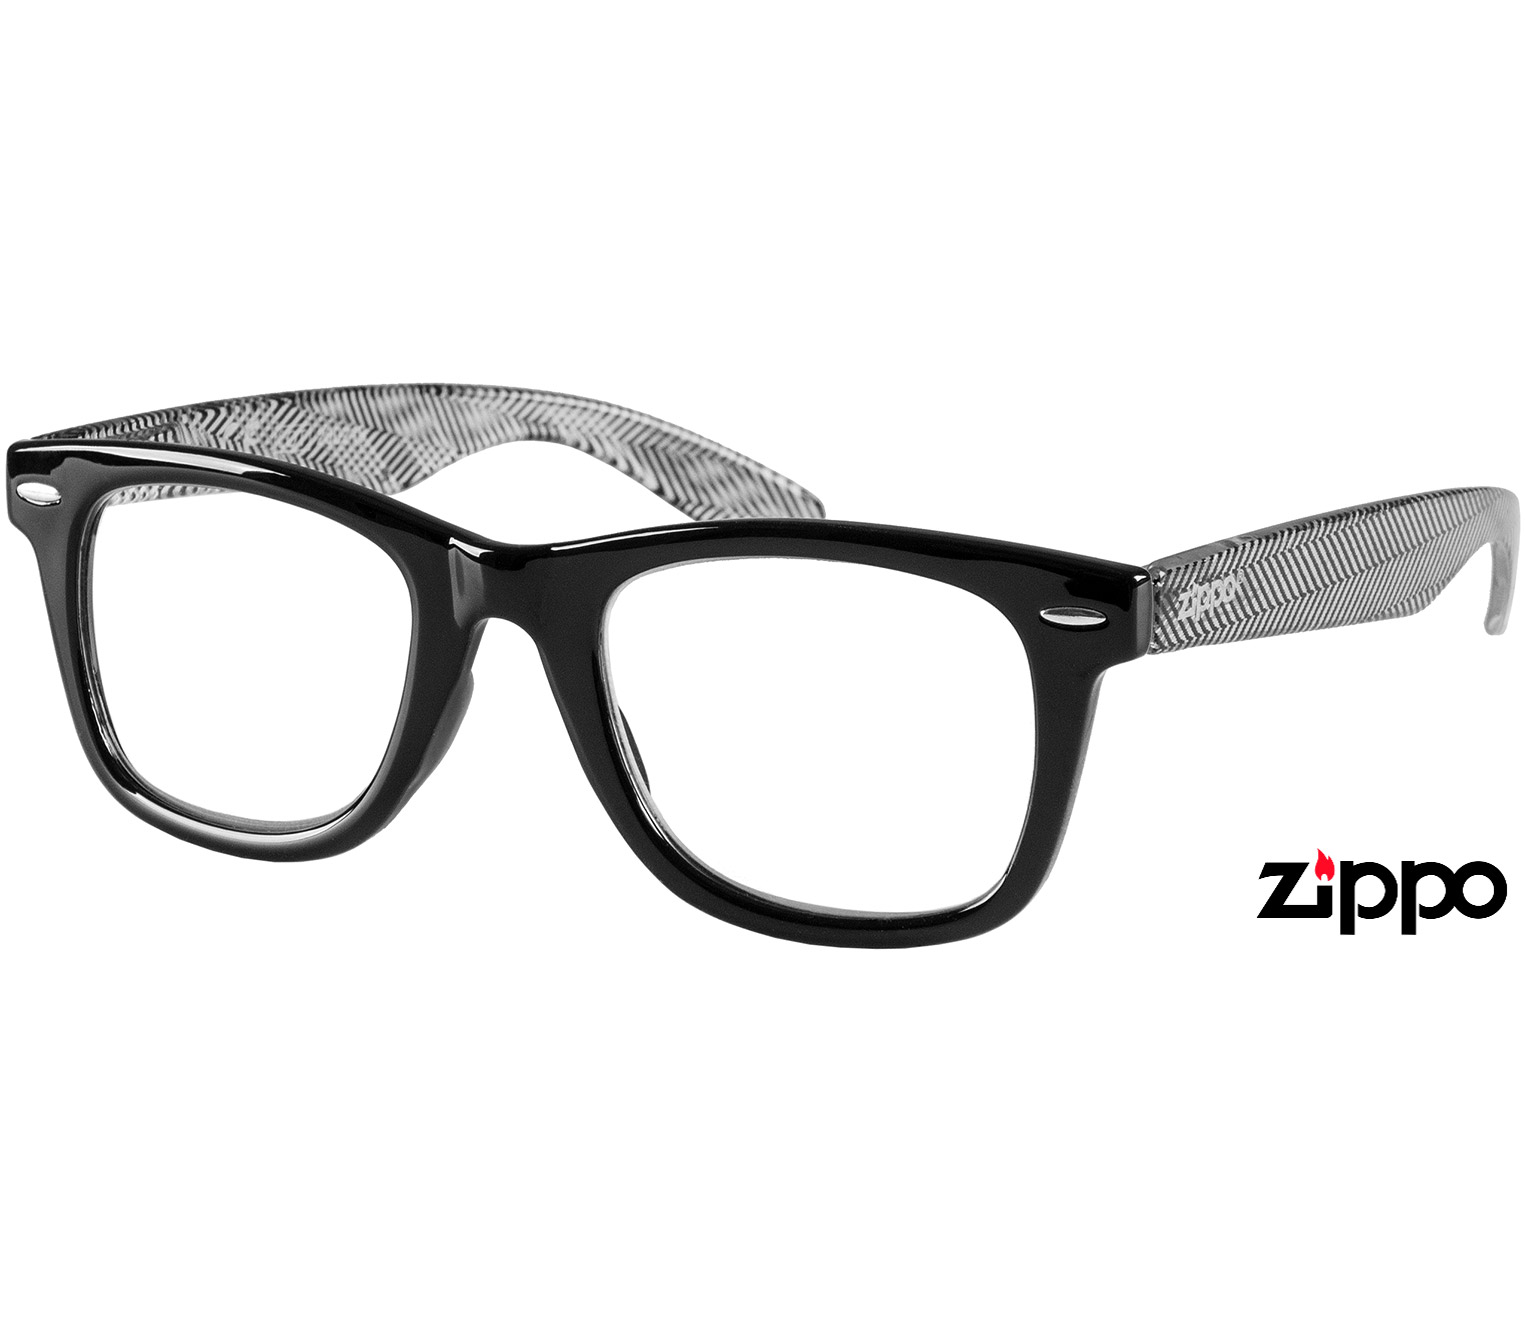 Main Image (Angle) - Soho (Black) Retro Reading Glasses